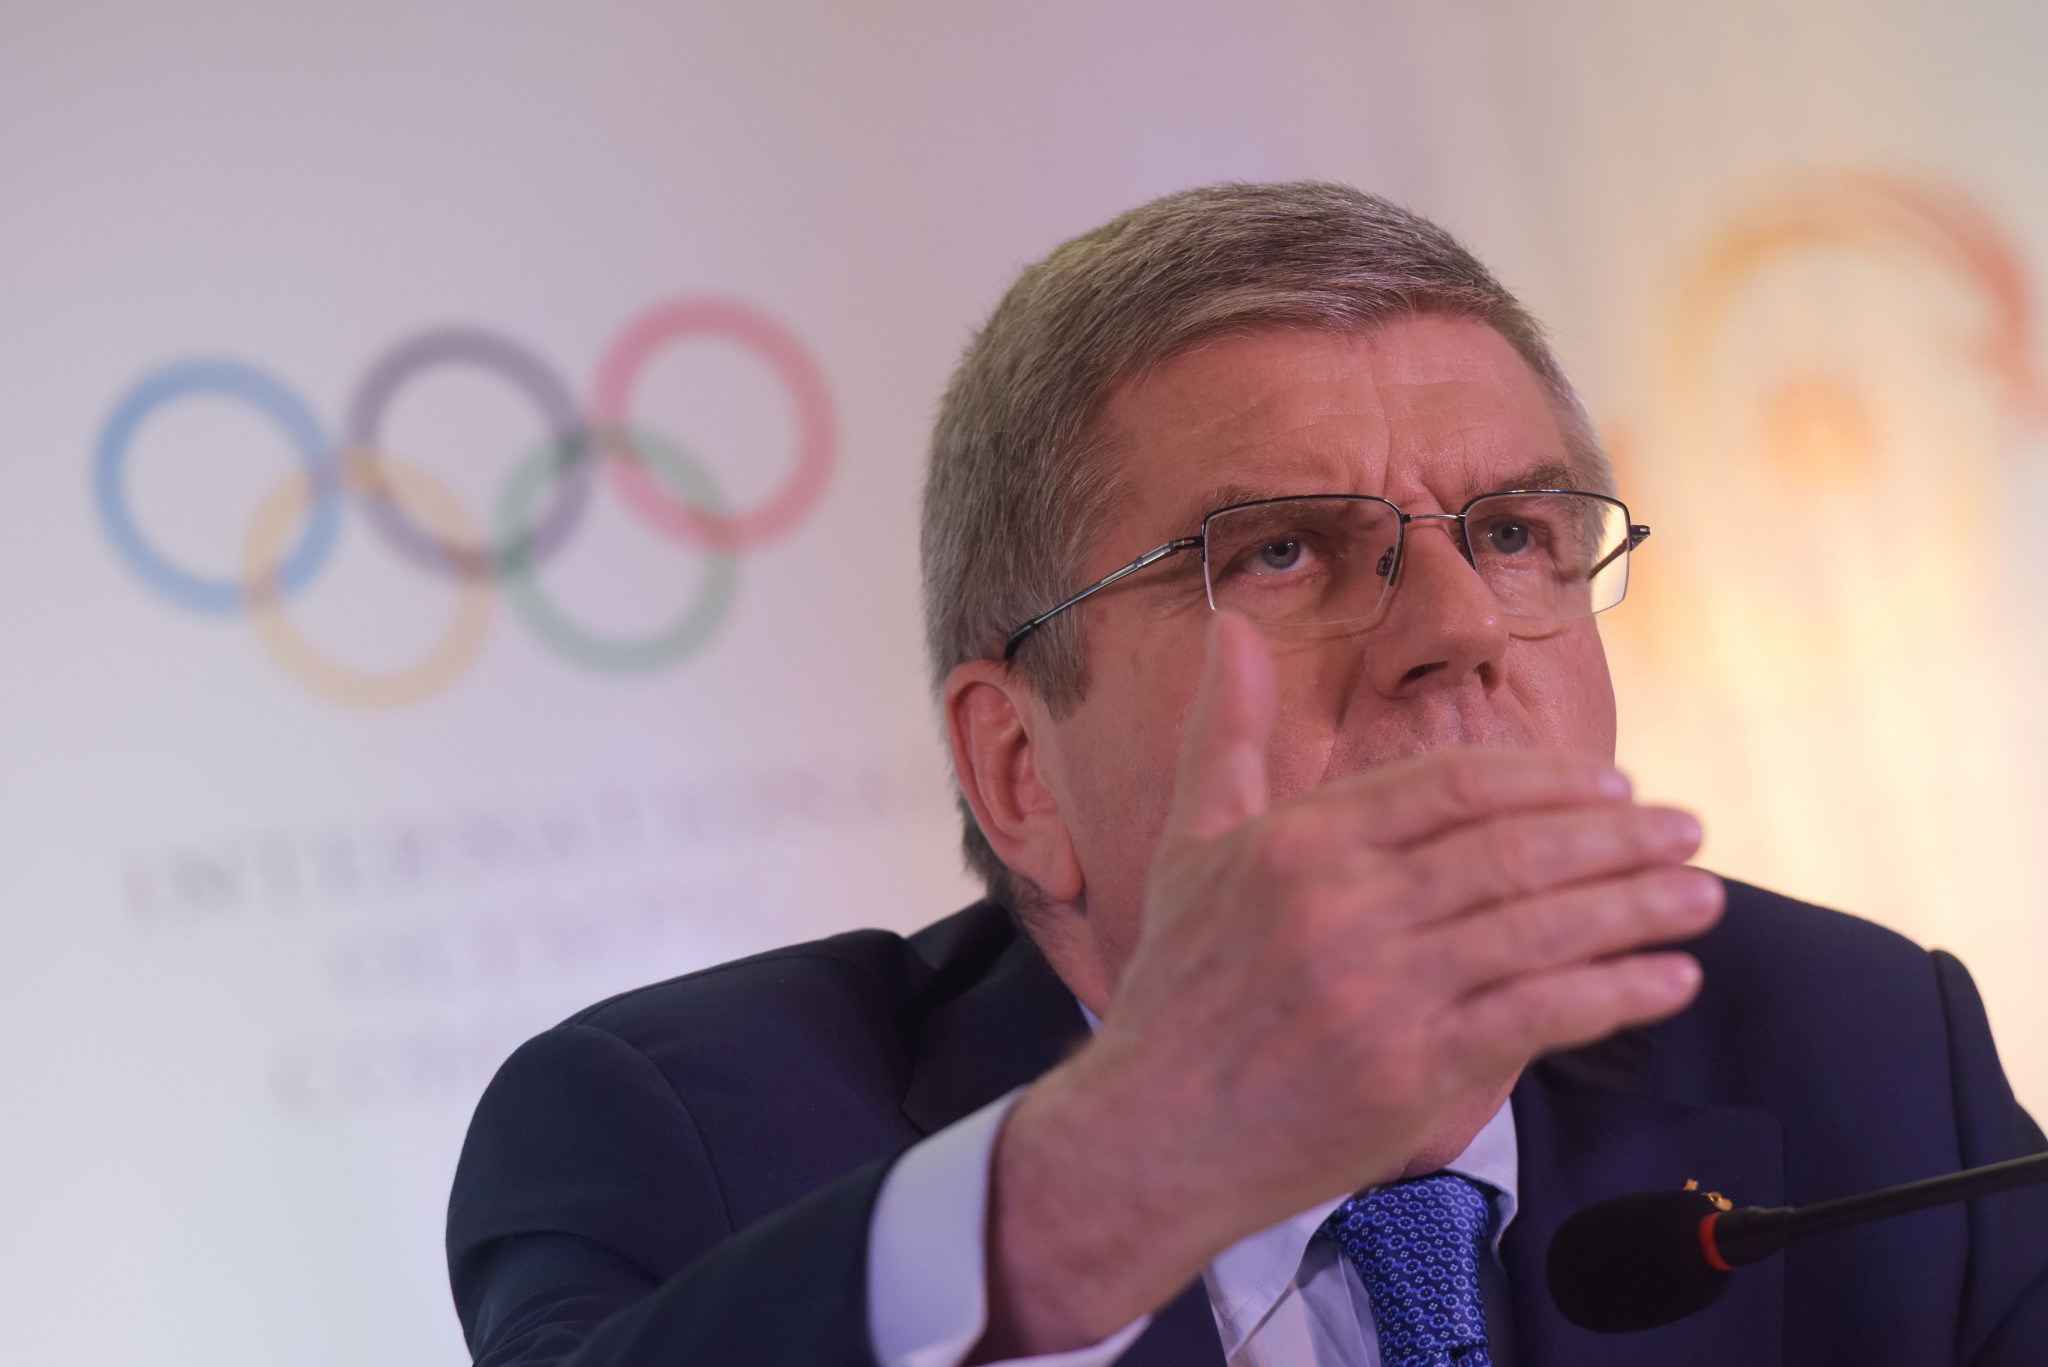 IOC President Thomas Bach warned India it was too early to discuss candidacies for future Games ©Getty Images